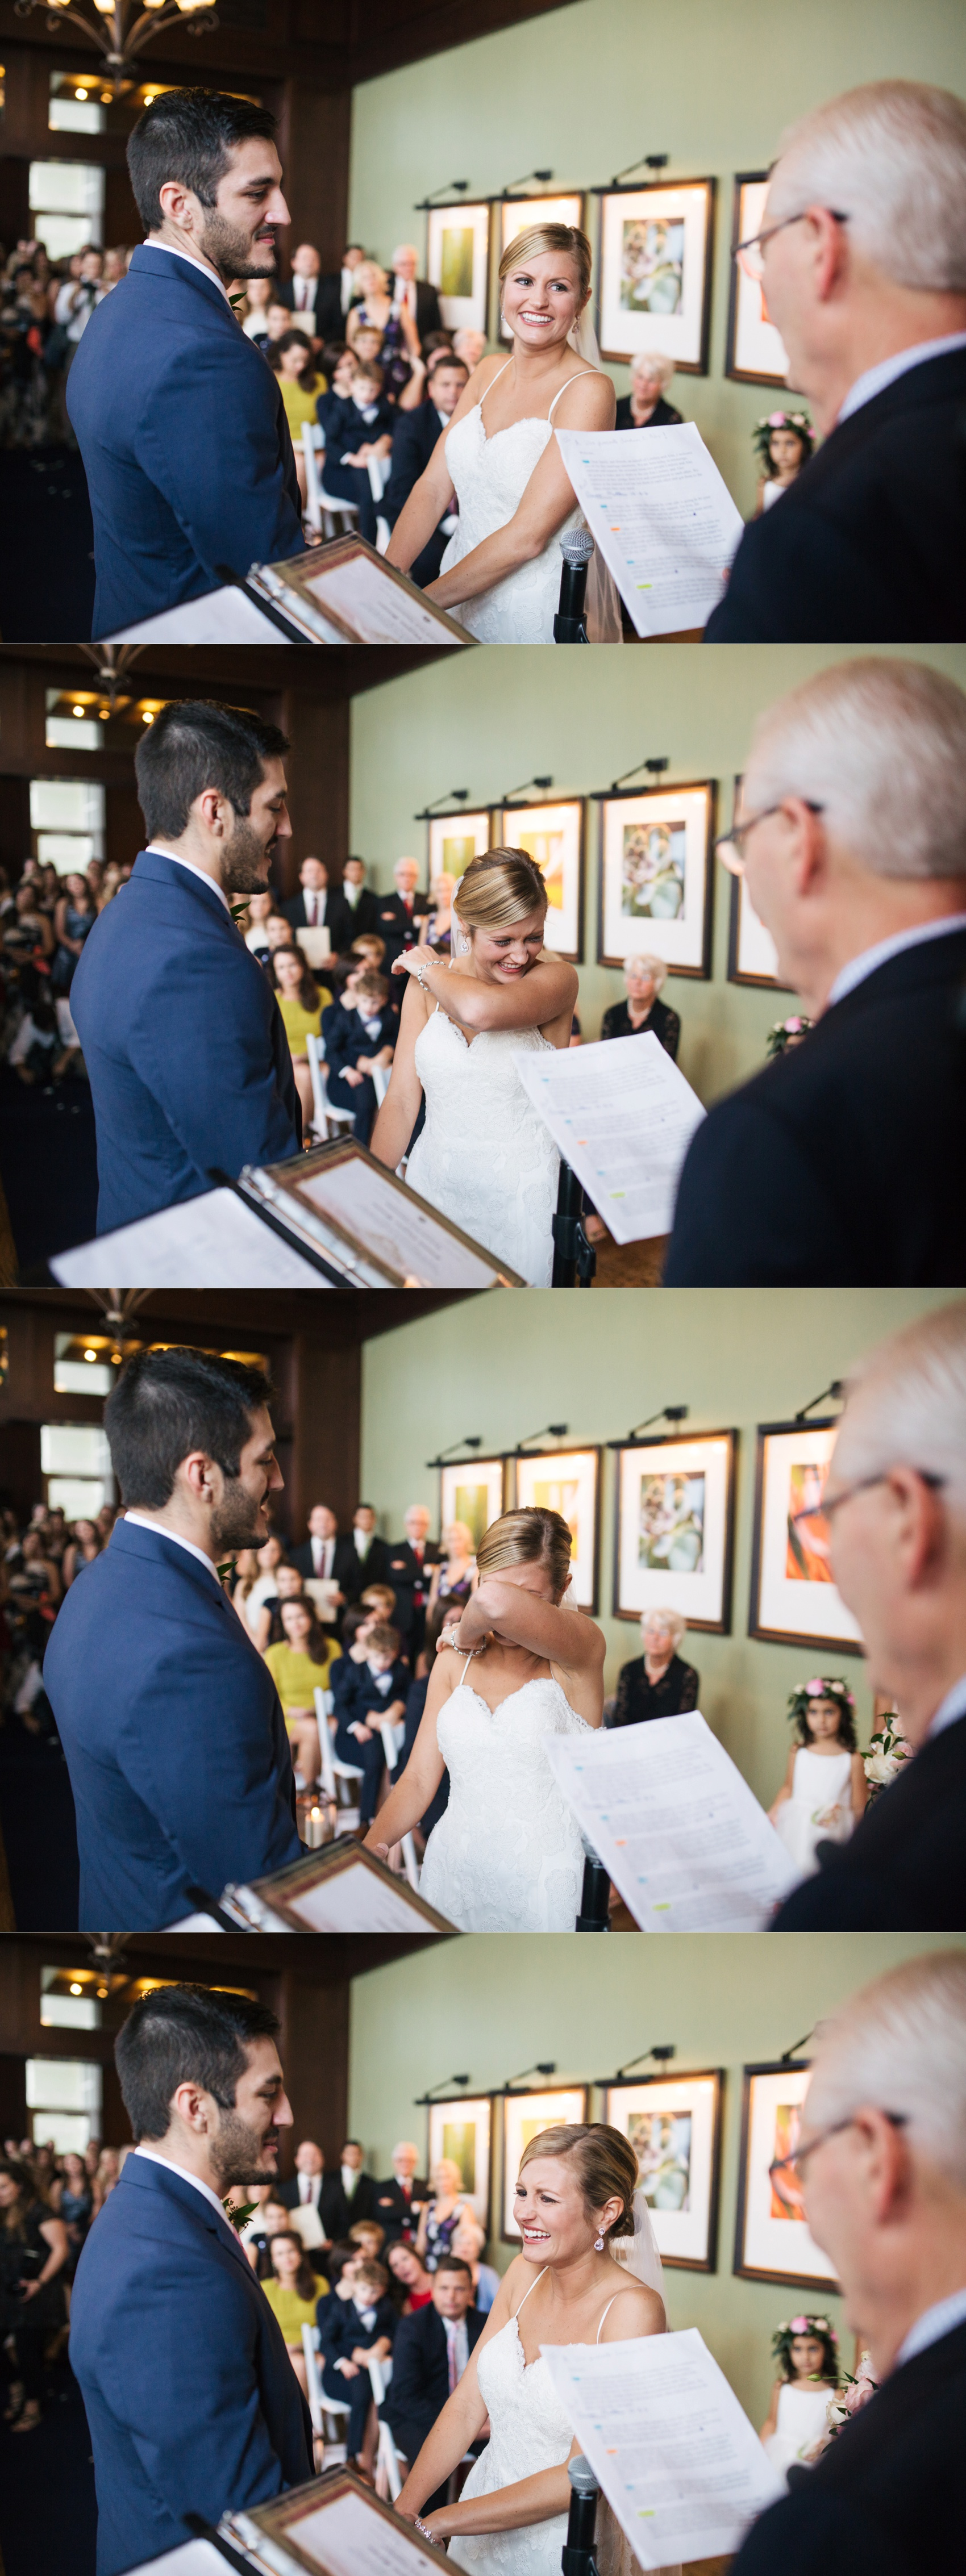 vero beach wedding alec lindsay-13